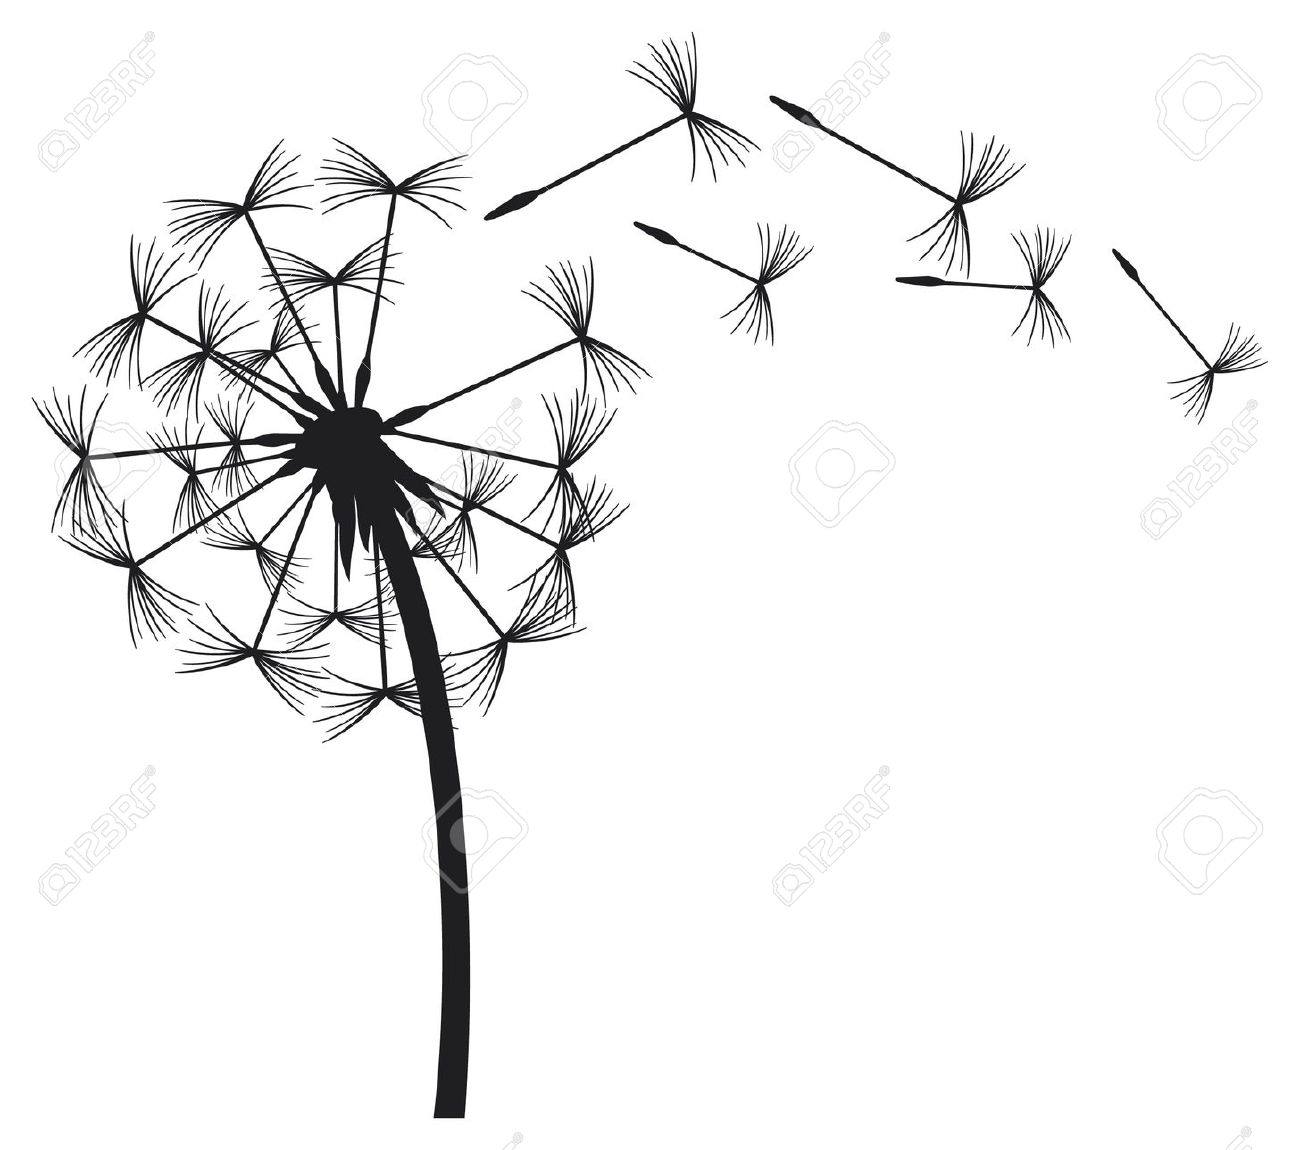 Dandelion In The Wind Royalty Free Cliparts, Vectors, And Stock.